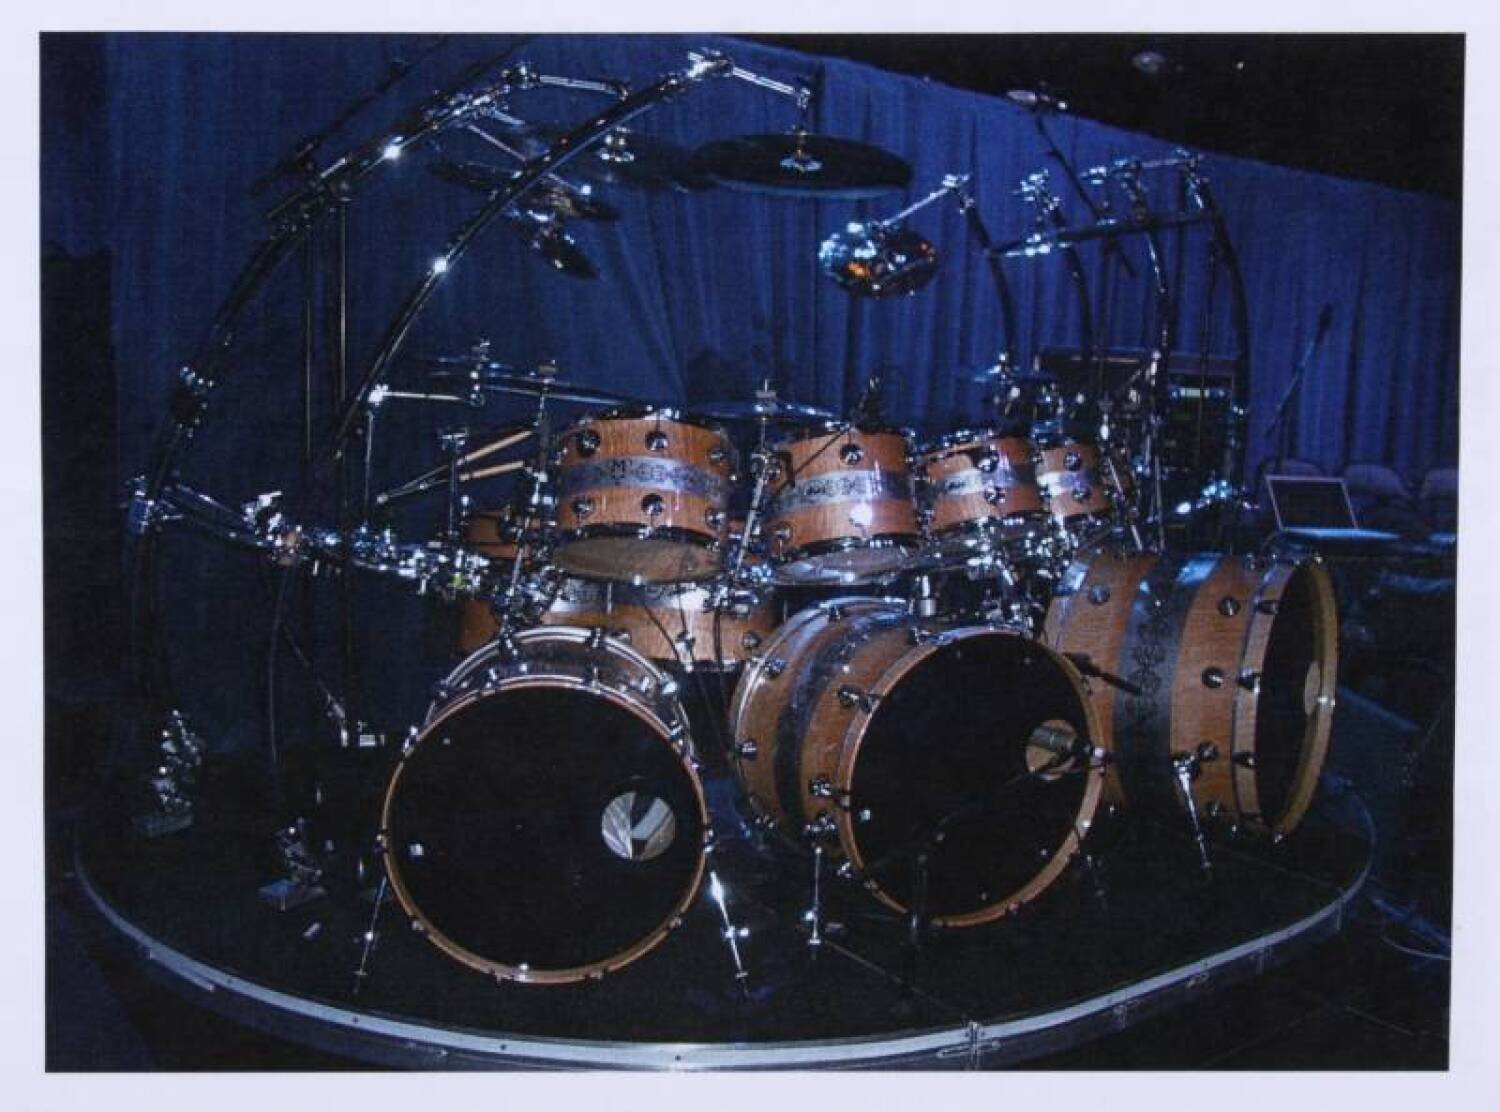 Michael Jackson This Is It Tour Drum Kit Current Price